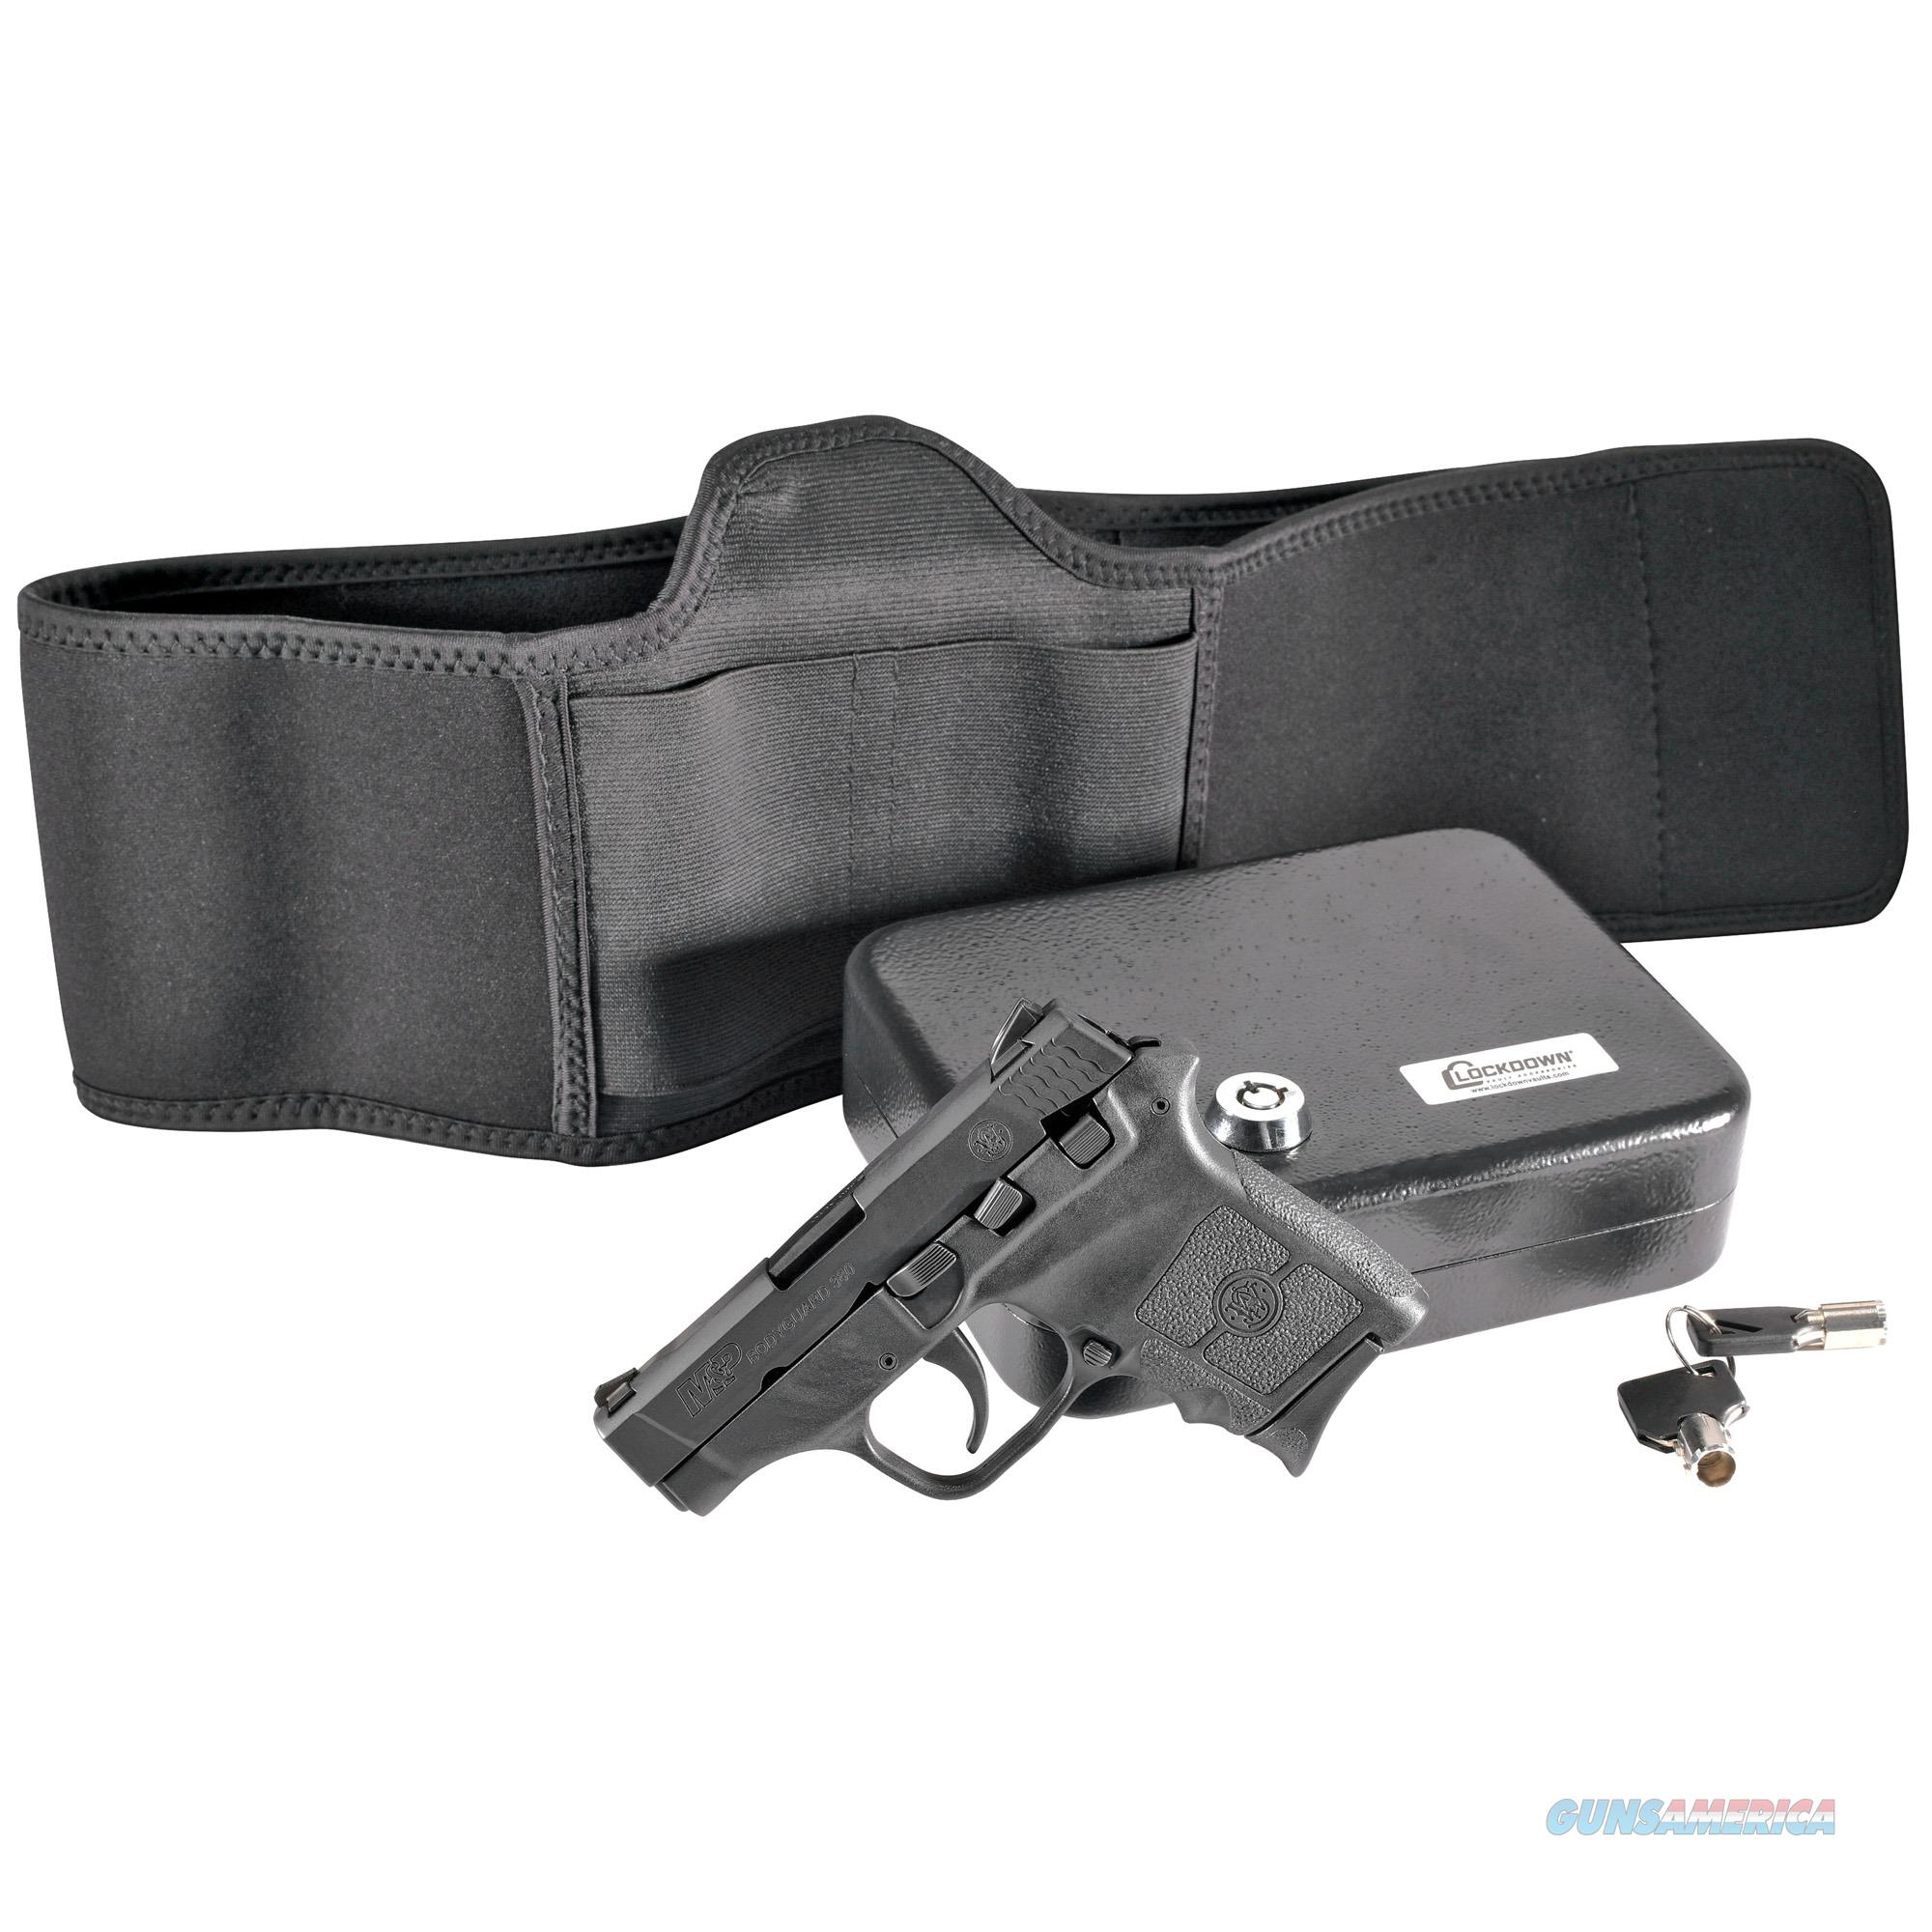 "Smith & Wesson 13117 M&P Bodyguard Defense Kit 380 ACP 2.75"" 6+1 Black Matte Black Polymer Grip  Guns > Pistols > Smith & Wesson Pistols - Autos > Polymer Frame"